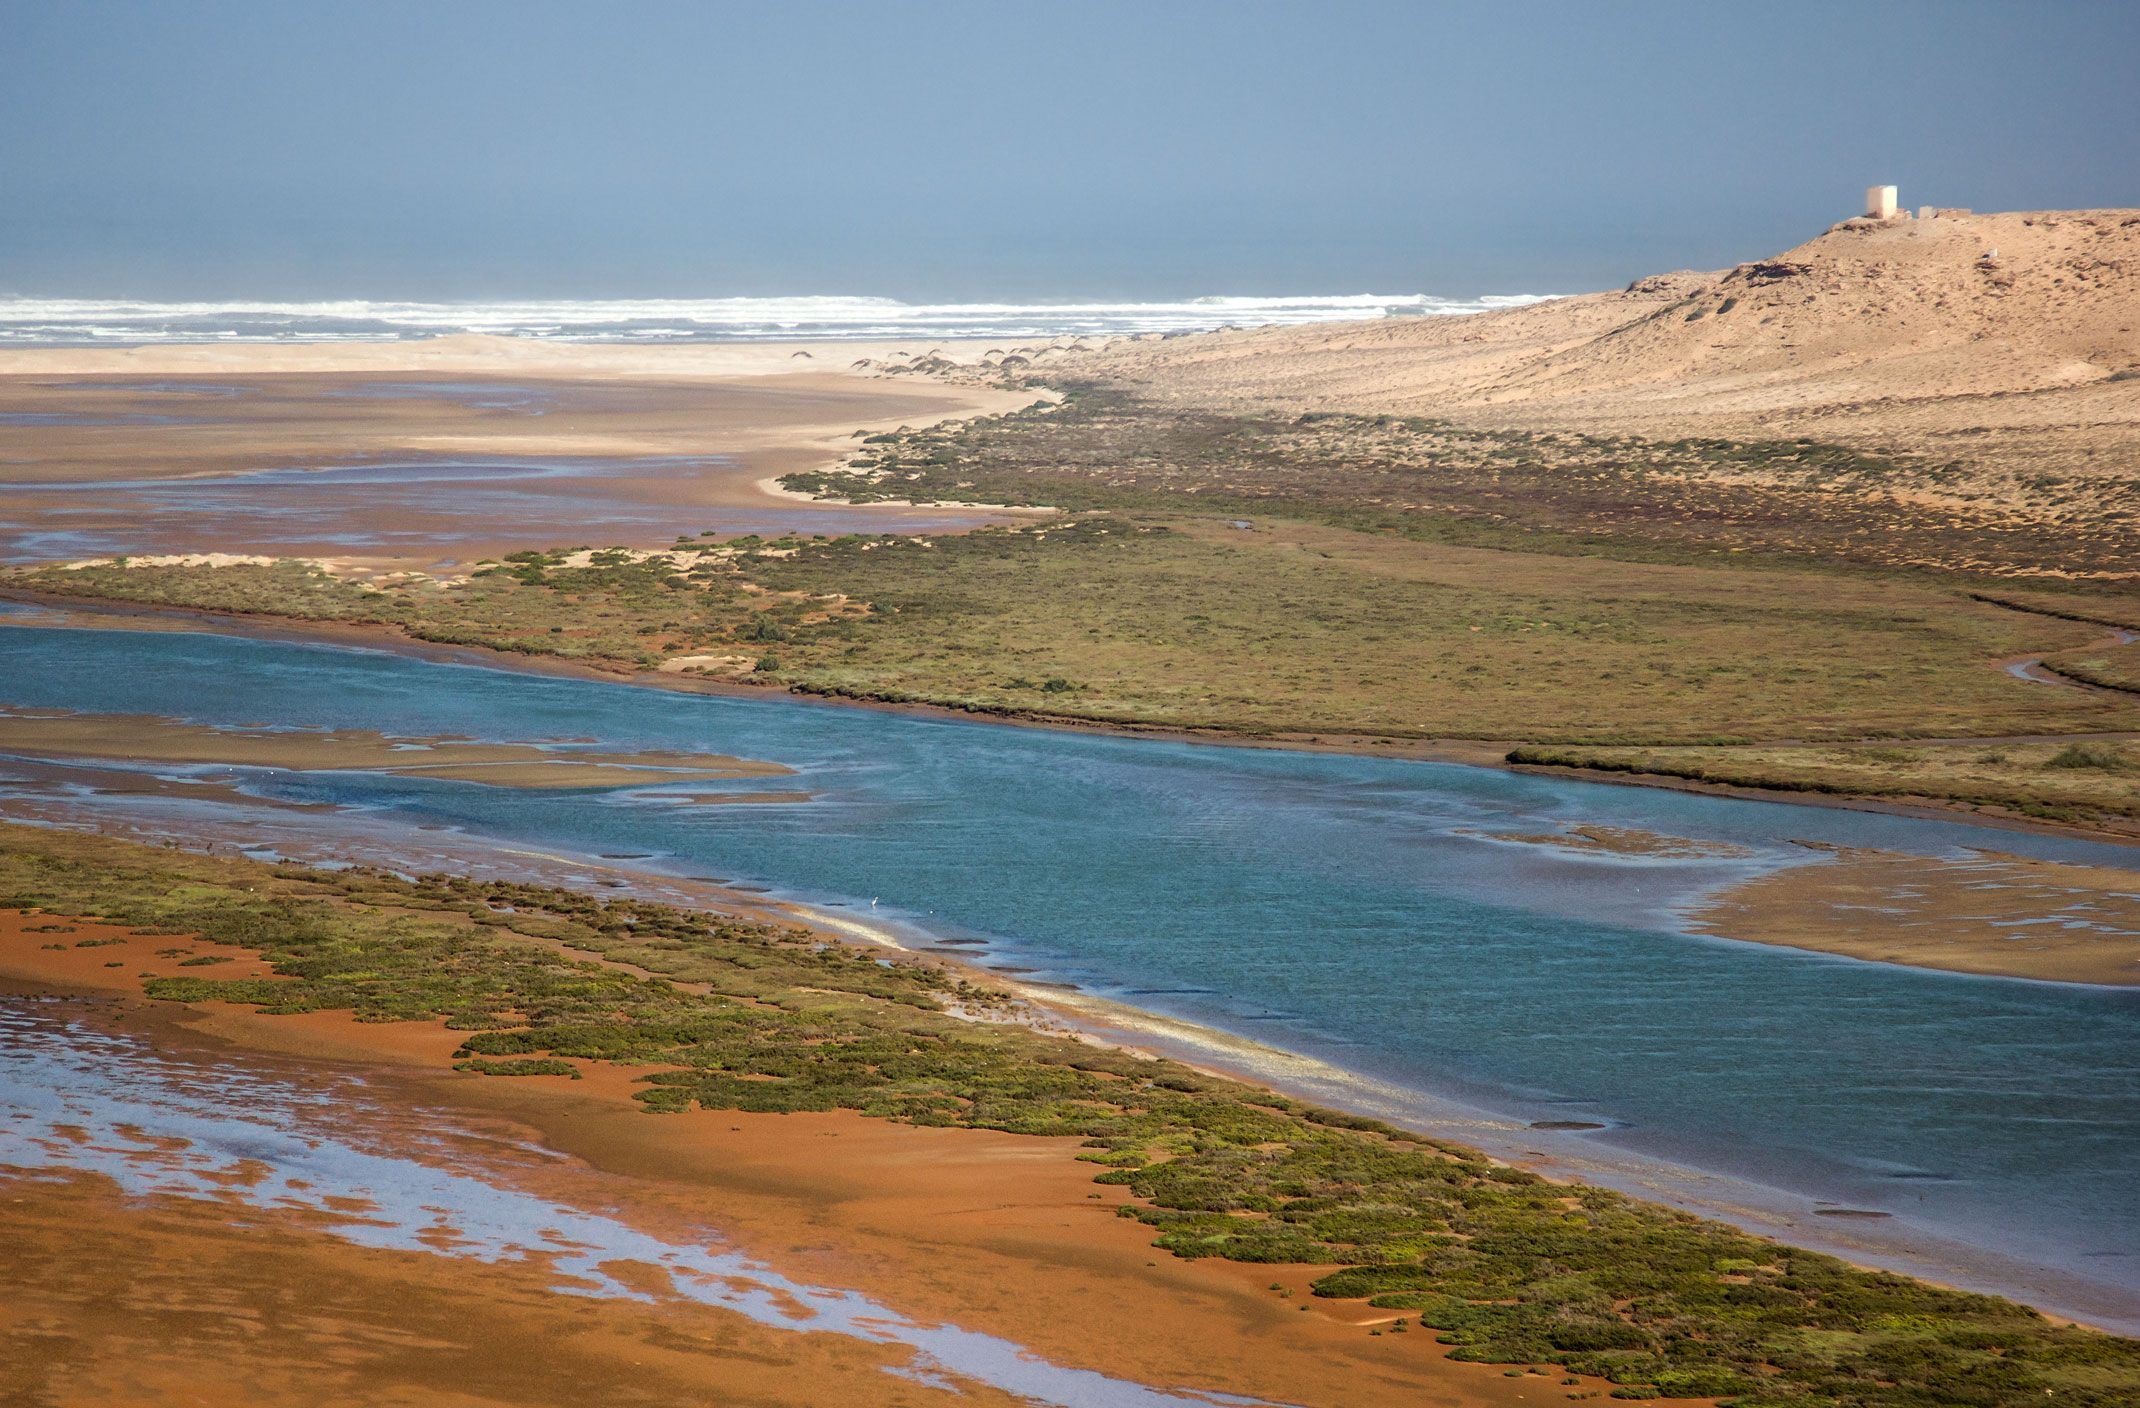 Oued Draa